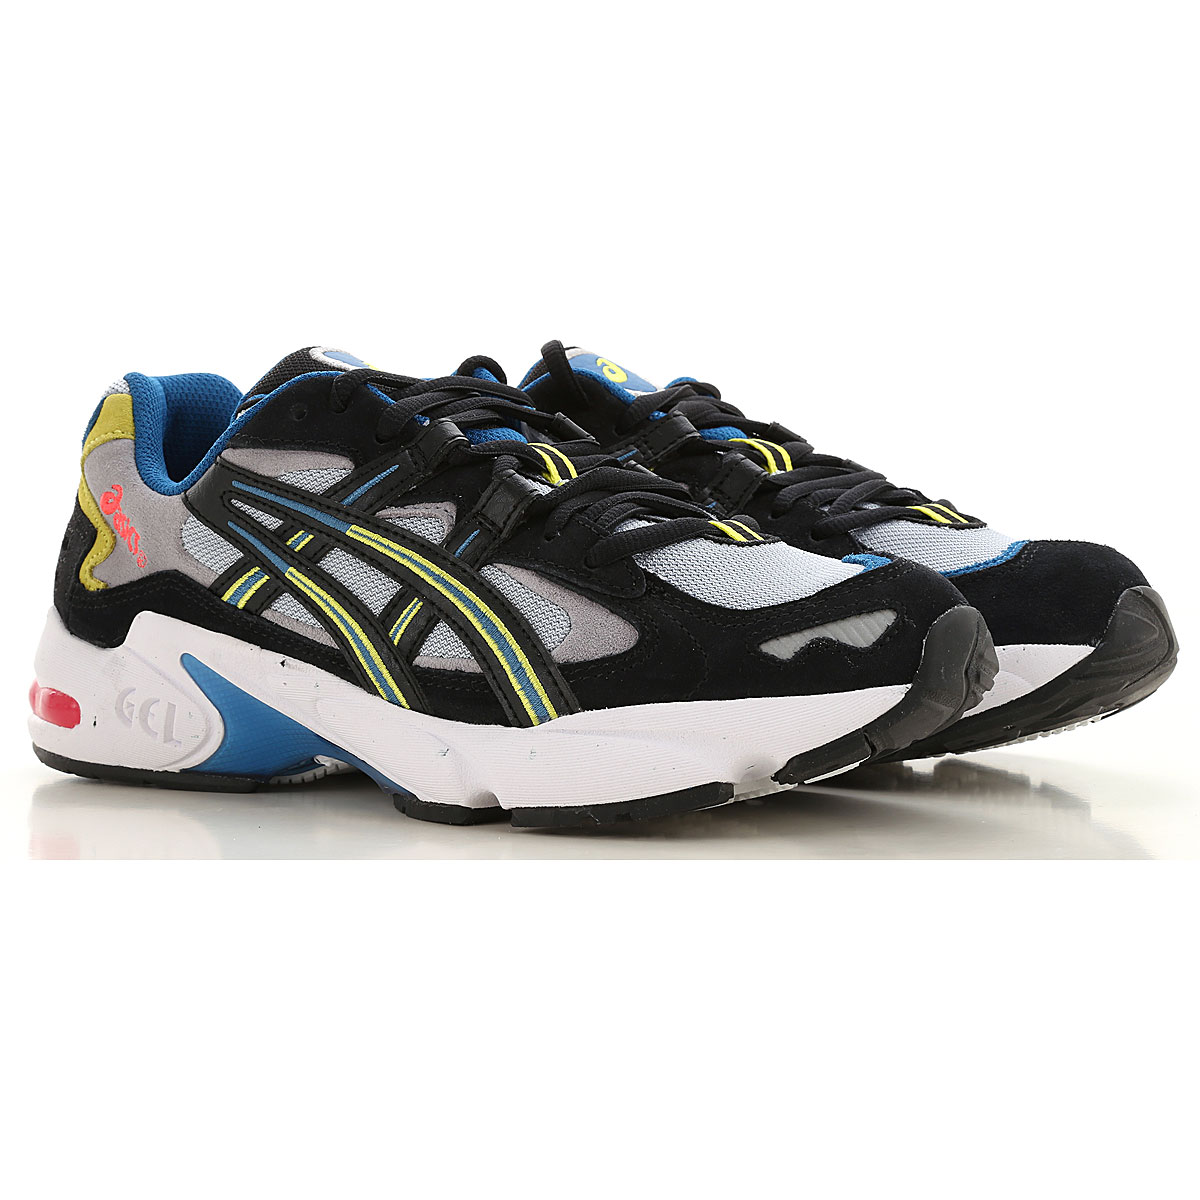 Asics Sneakers for Men On Sale in Outlet, Grey, Leather, 2019, 8 9.5